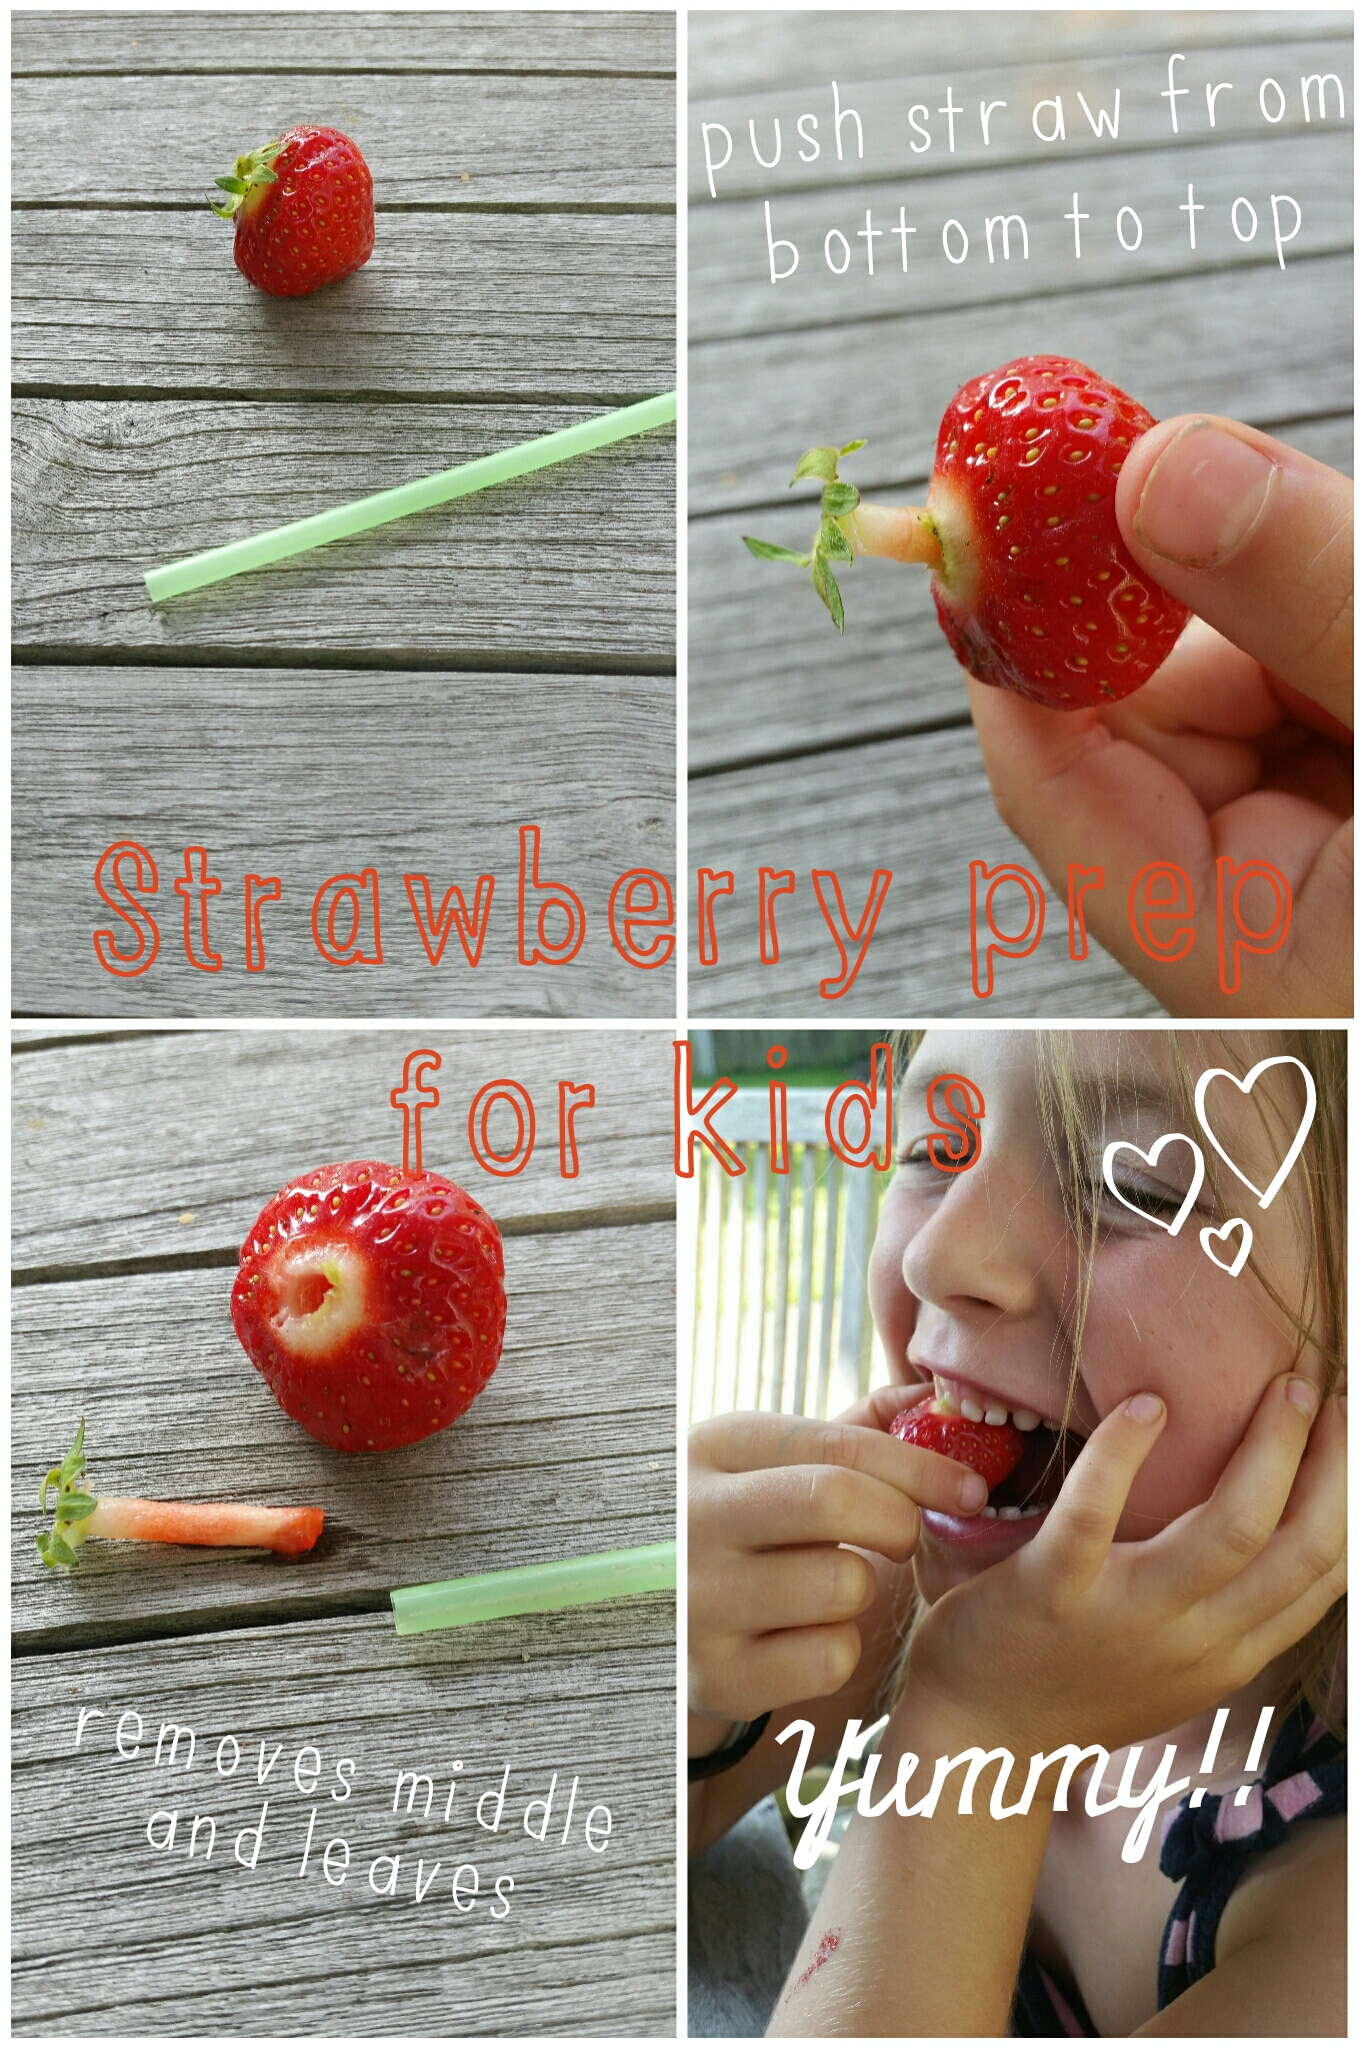 Strawberry straw